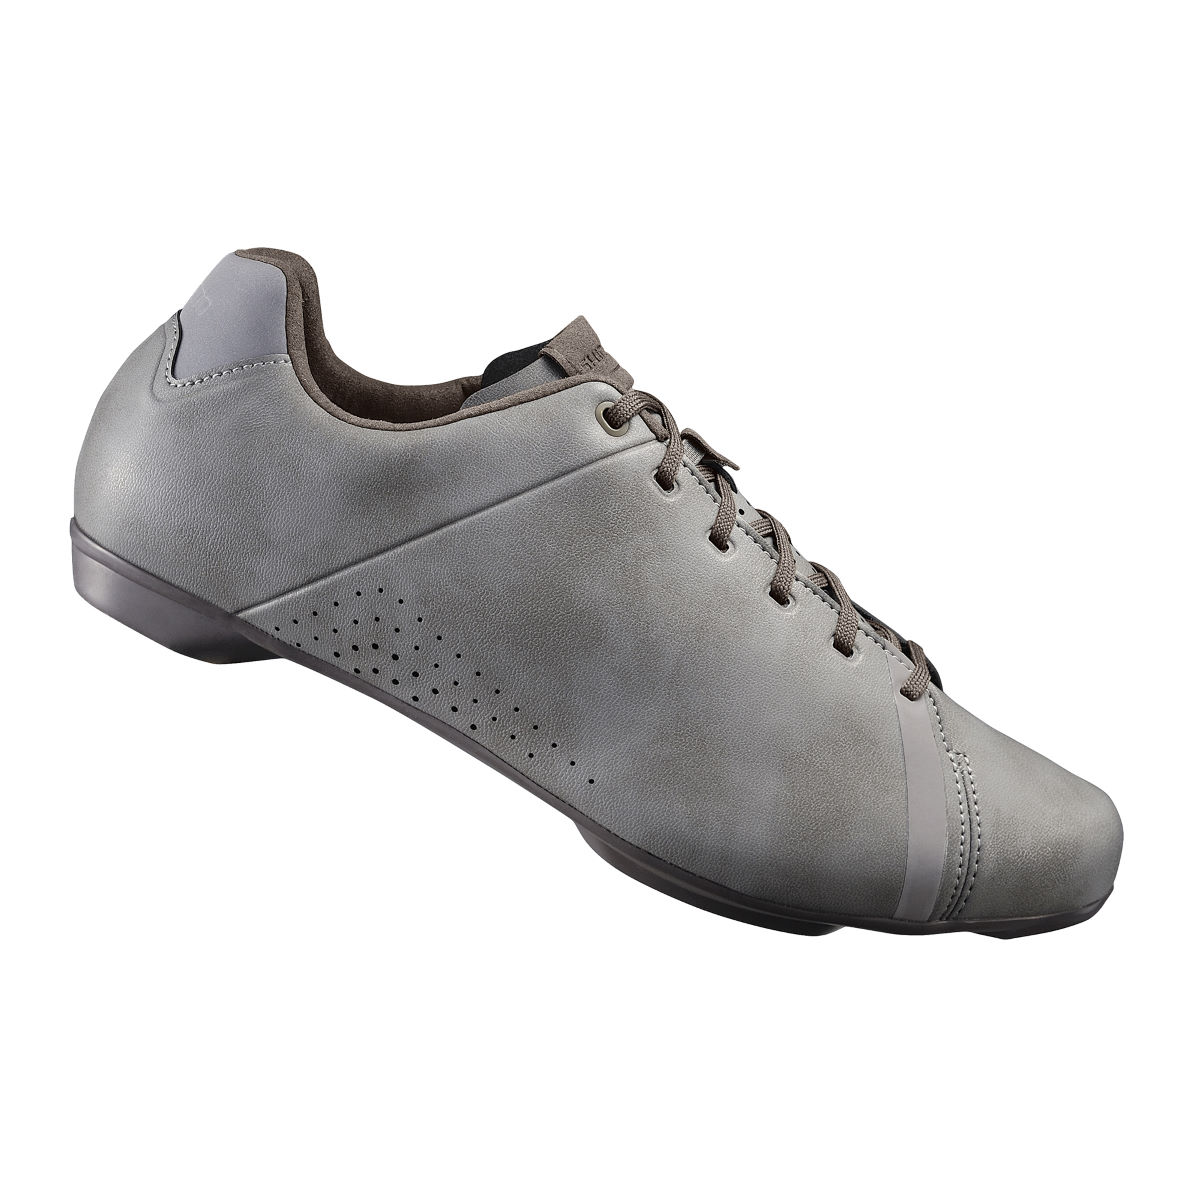 Chaussures Shimano RT4 SPD (cyclotourisme) - 40 Gris